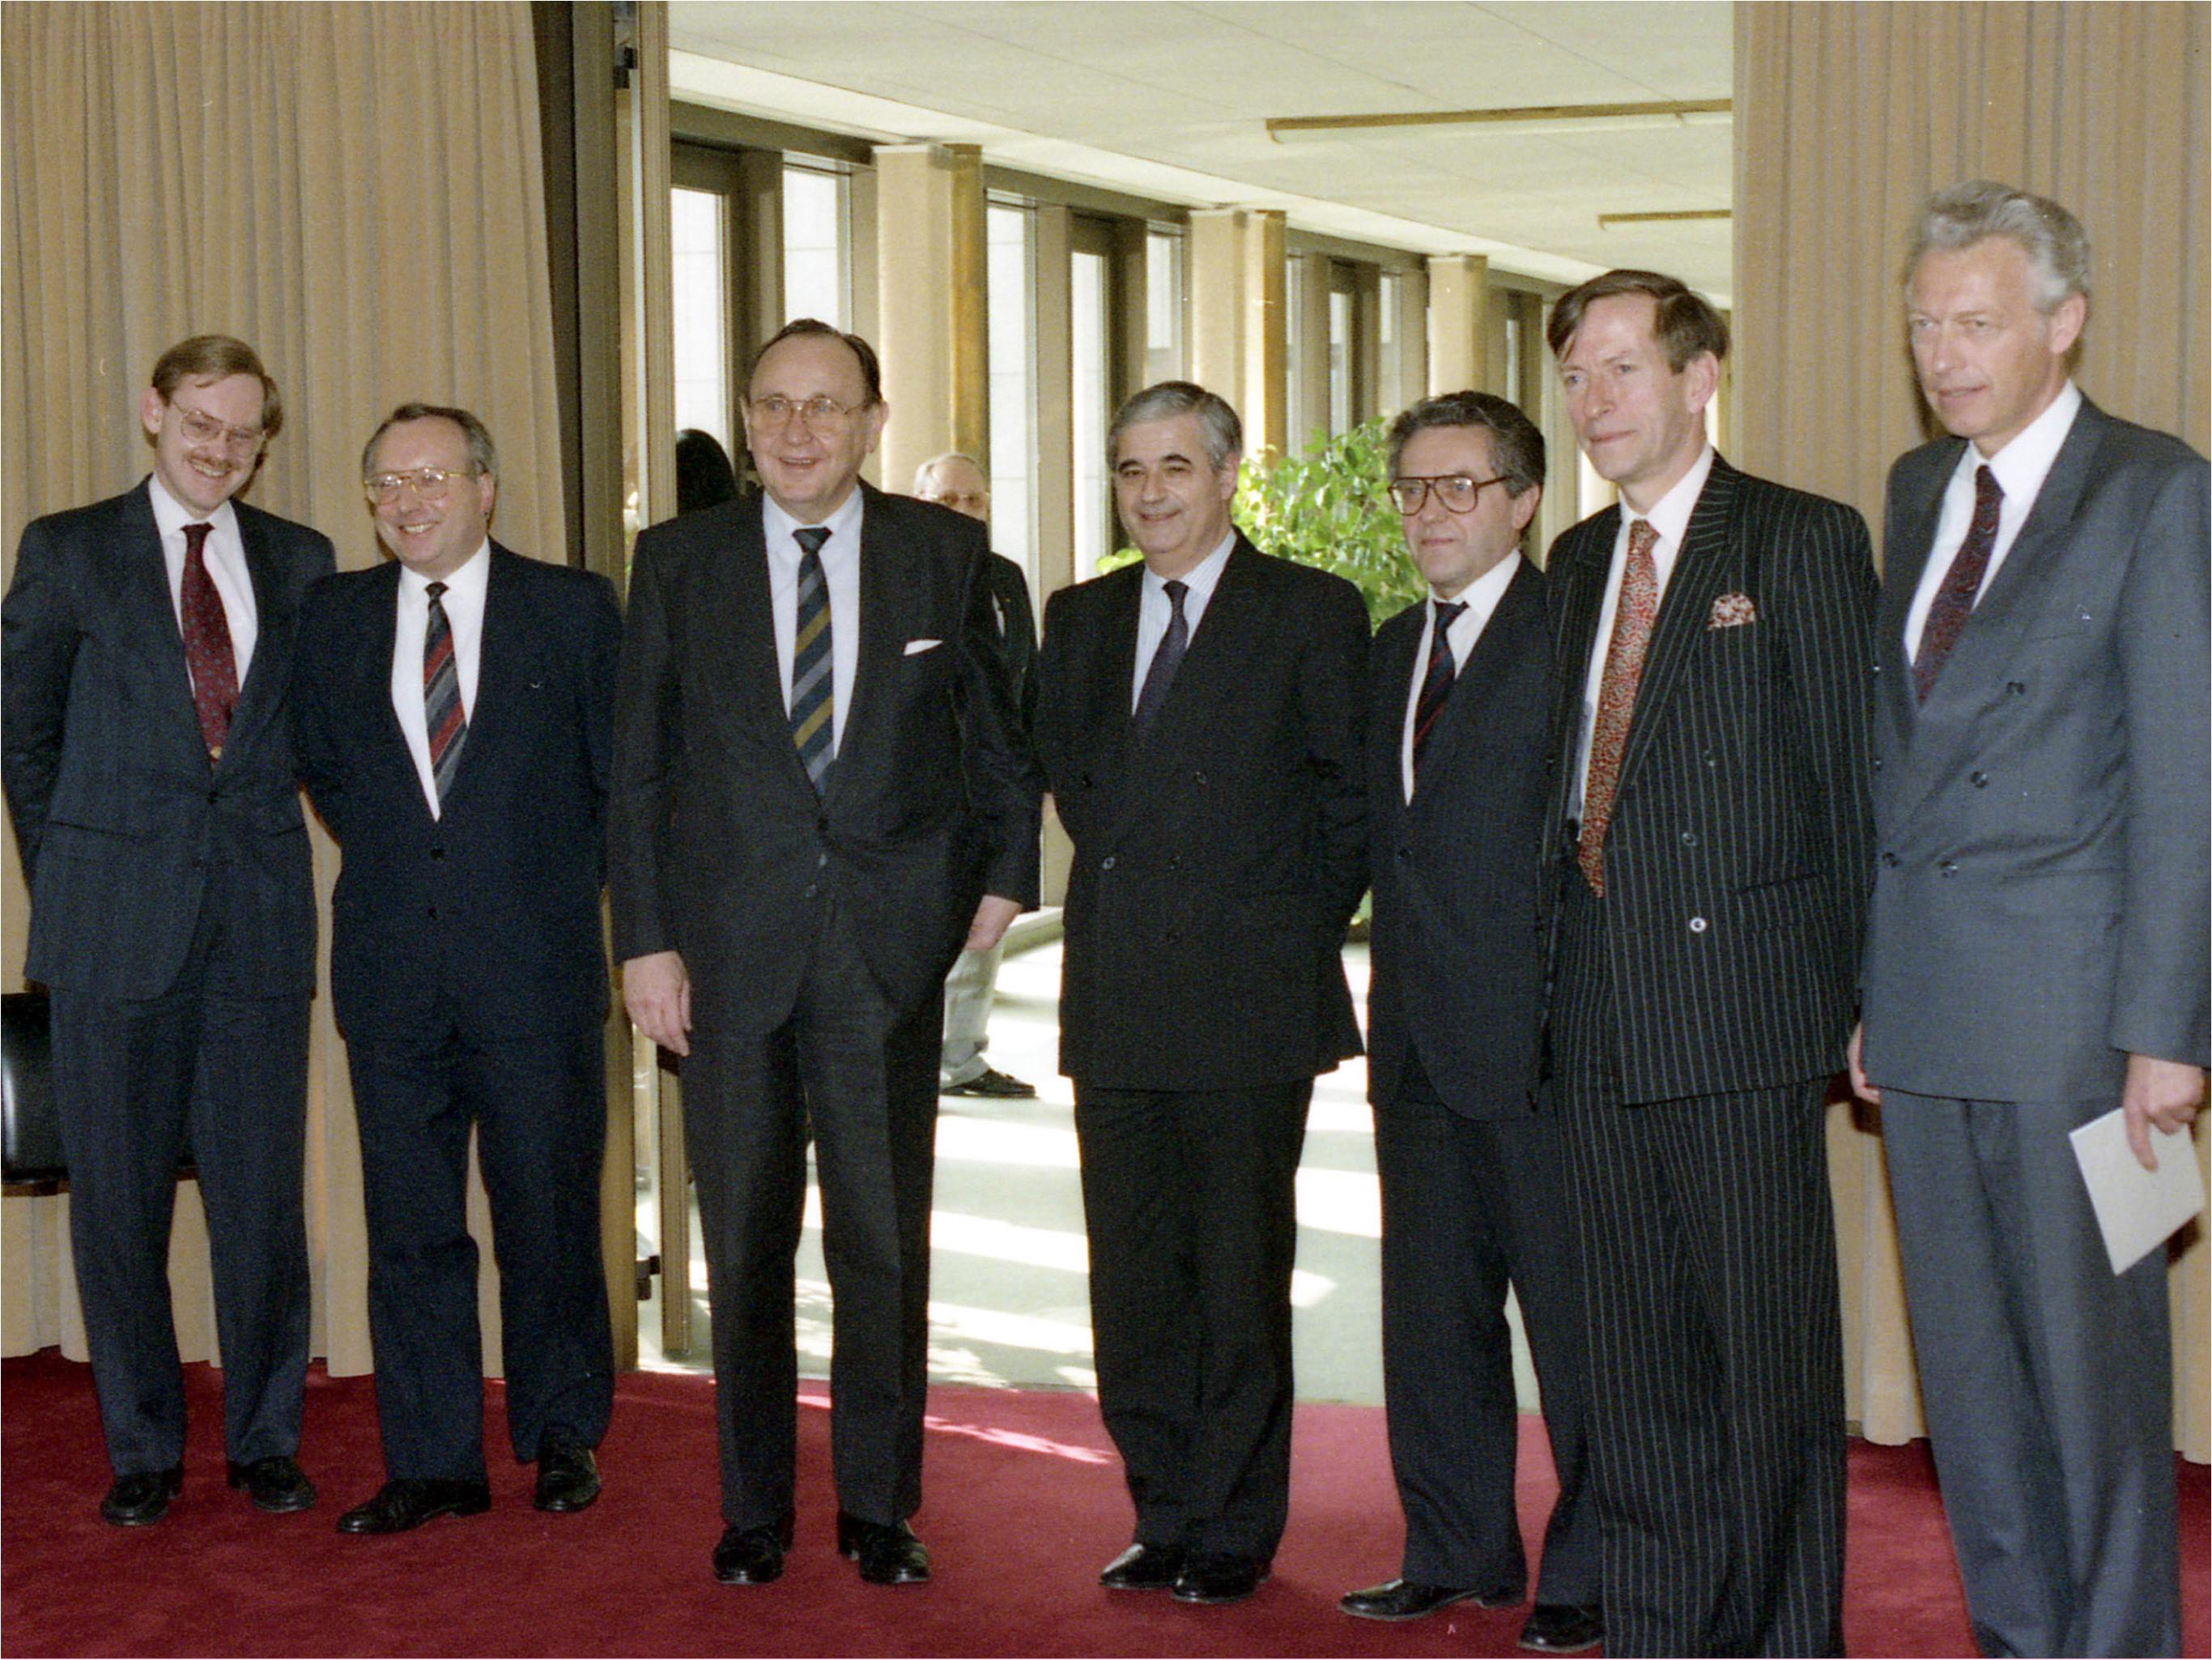 Image of the delegation posing for the press